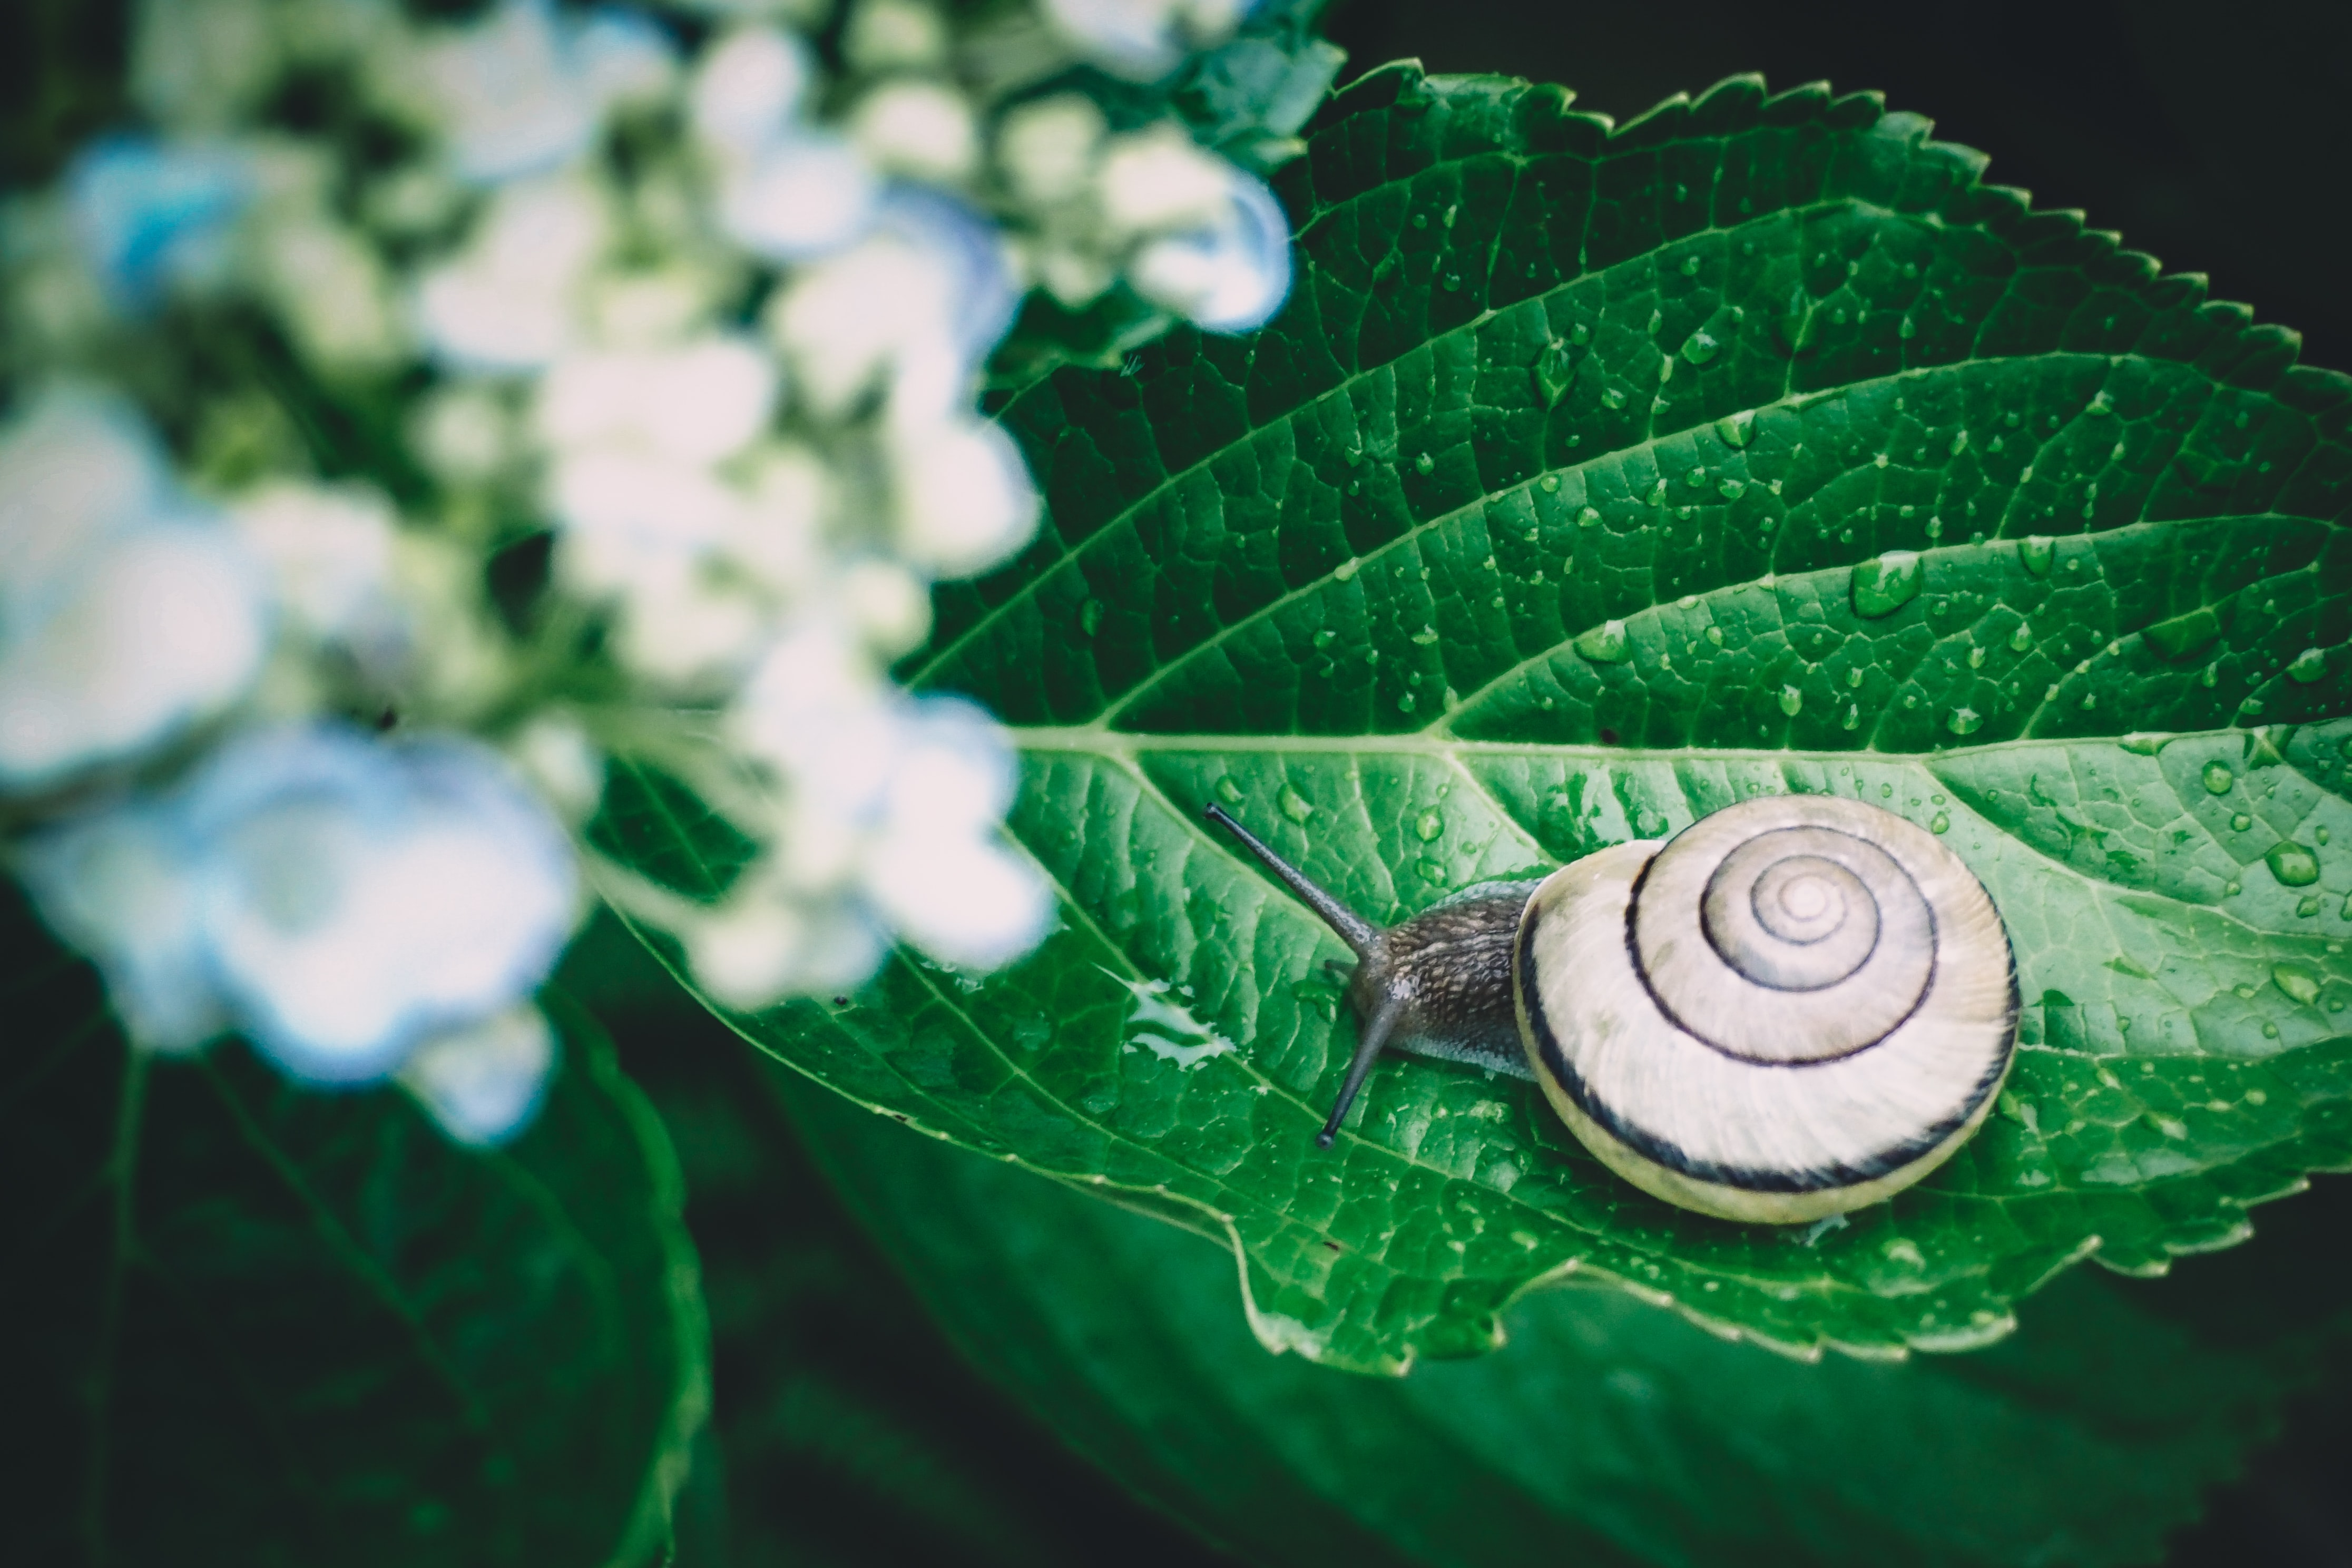 selective focus photography of snail on green leafed plant